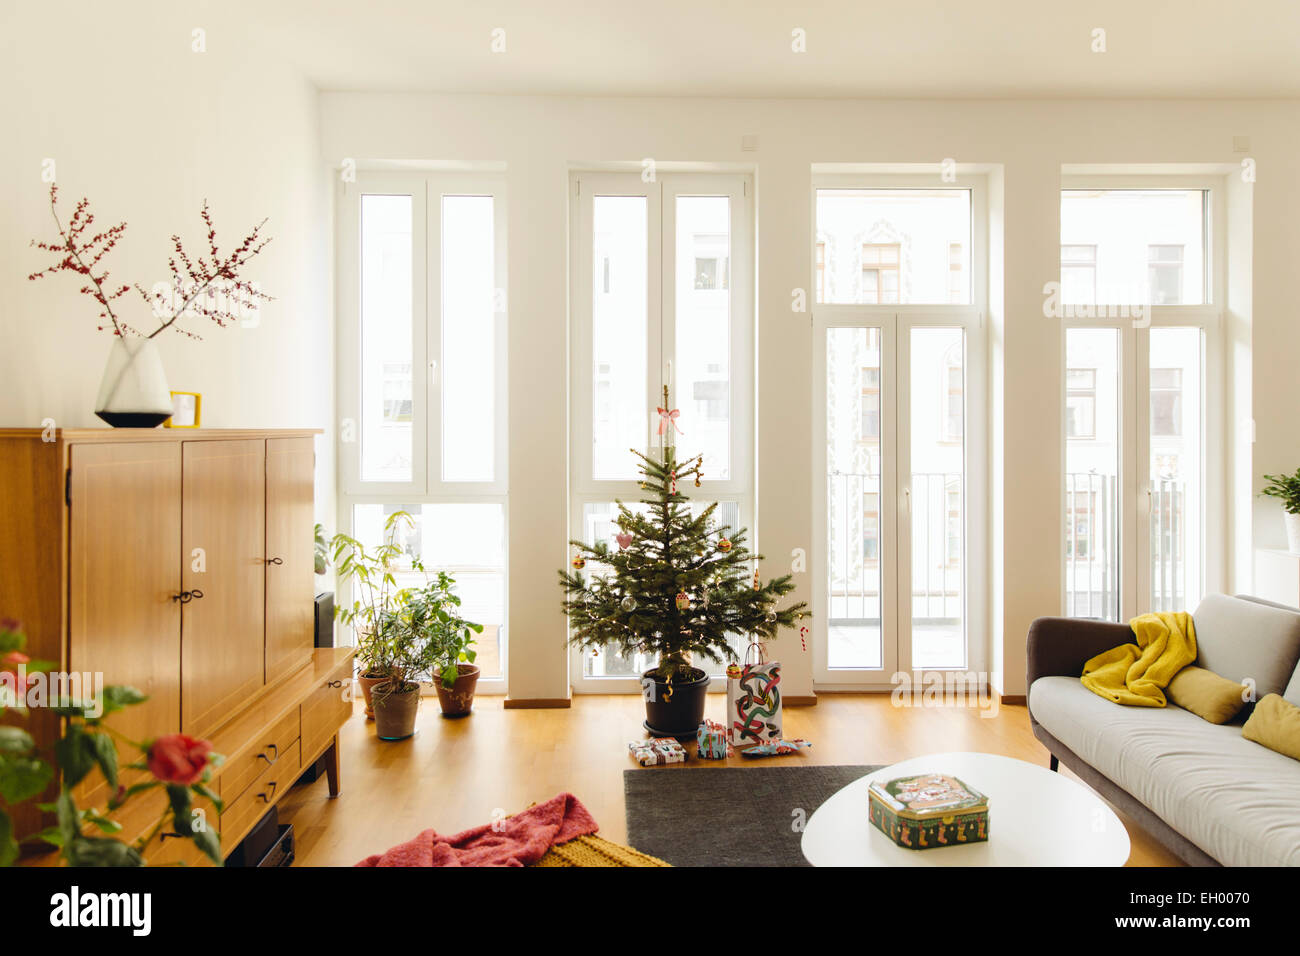 Modern loft living room with potted blue spruce Christmas tree Stock ...